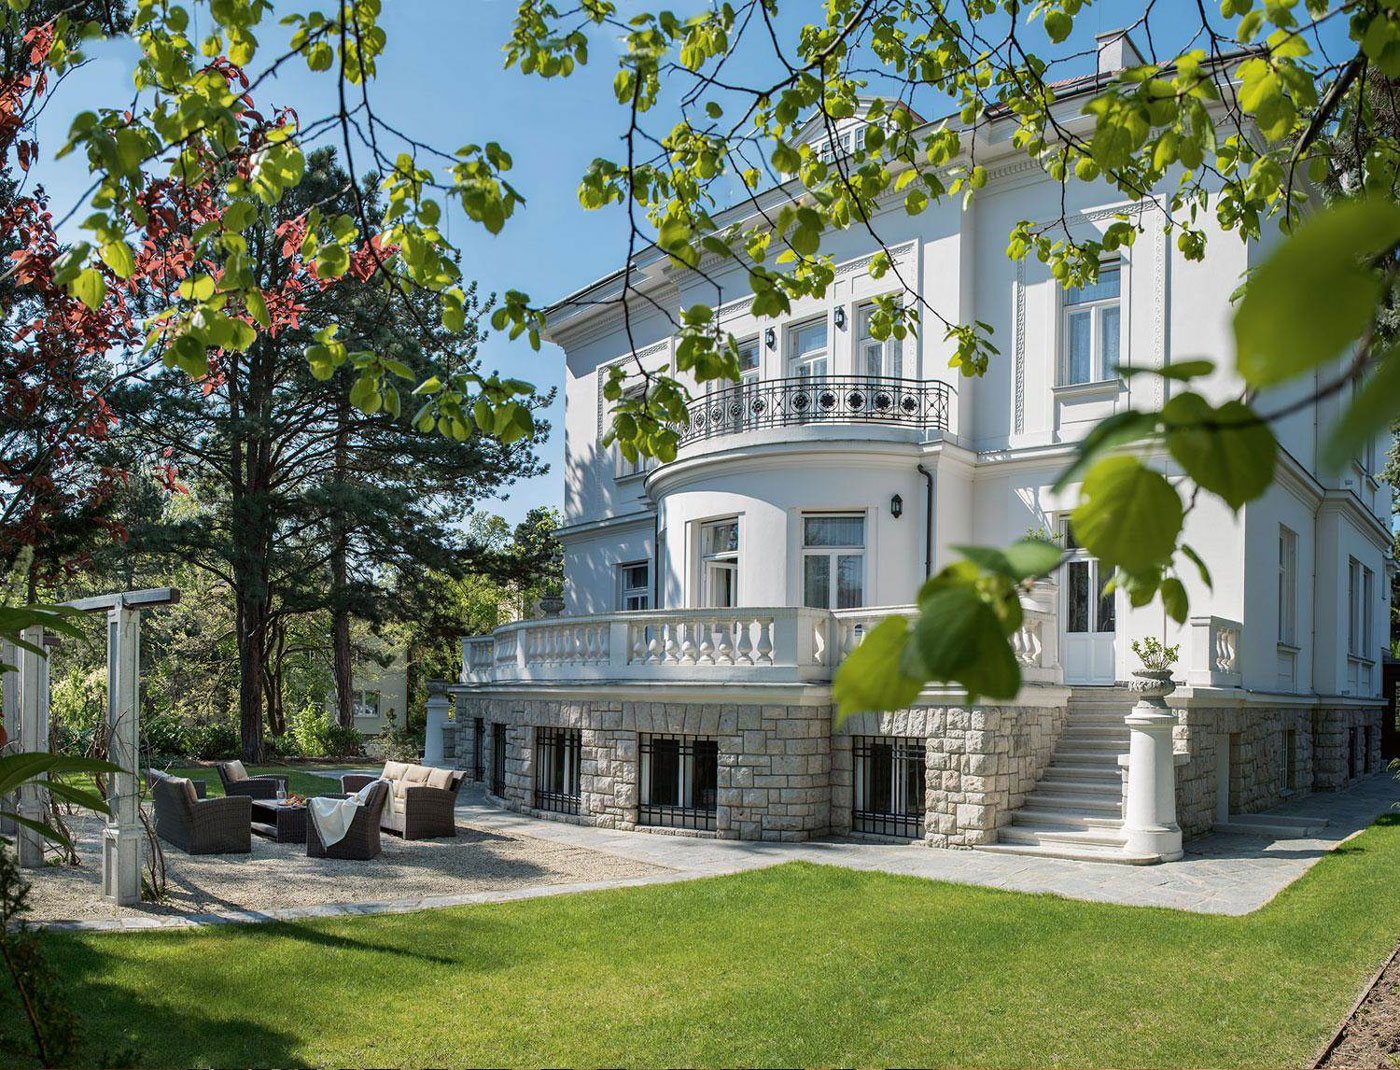 Just a 15-minute drive from the Vienna Ice Dream skating venue is Villa Lieblein, an outstanding cottage-style residence built in 1924, which showcases the perfect combination of classical architecture and Art Nouveau design.